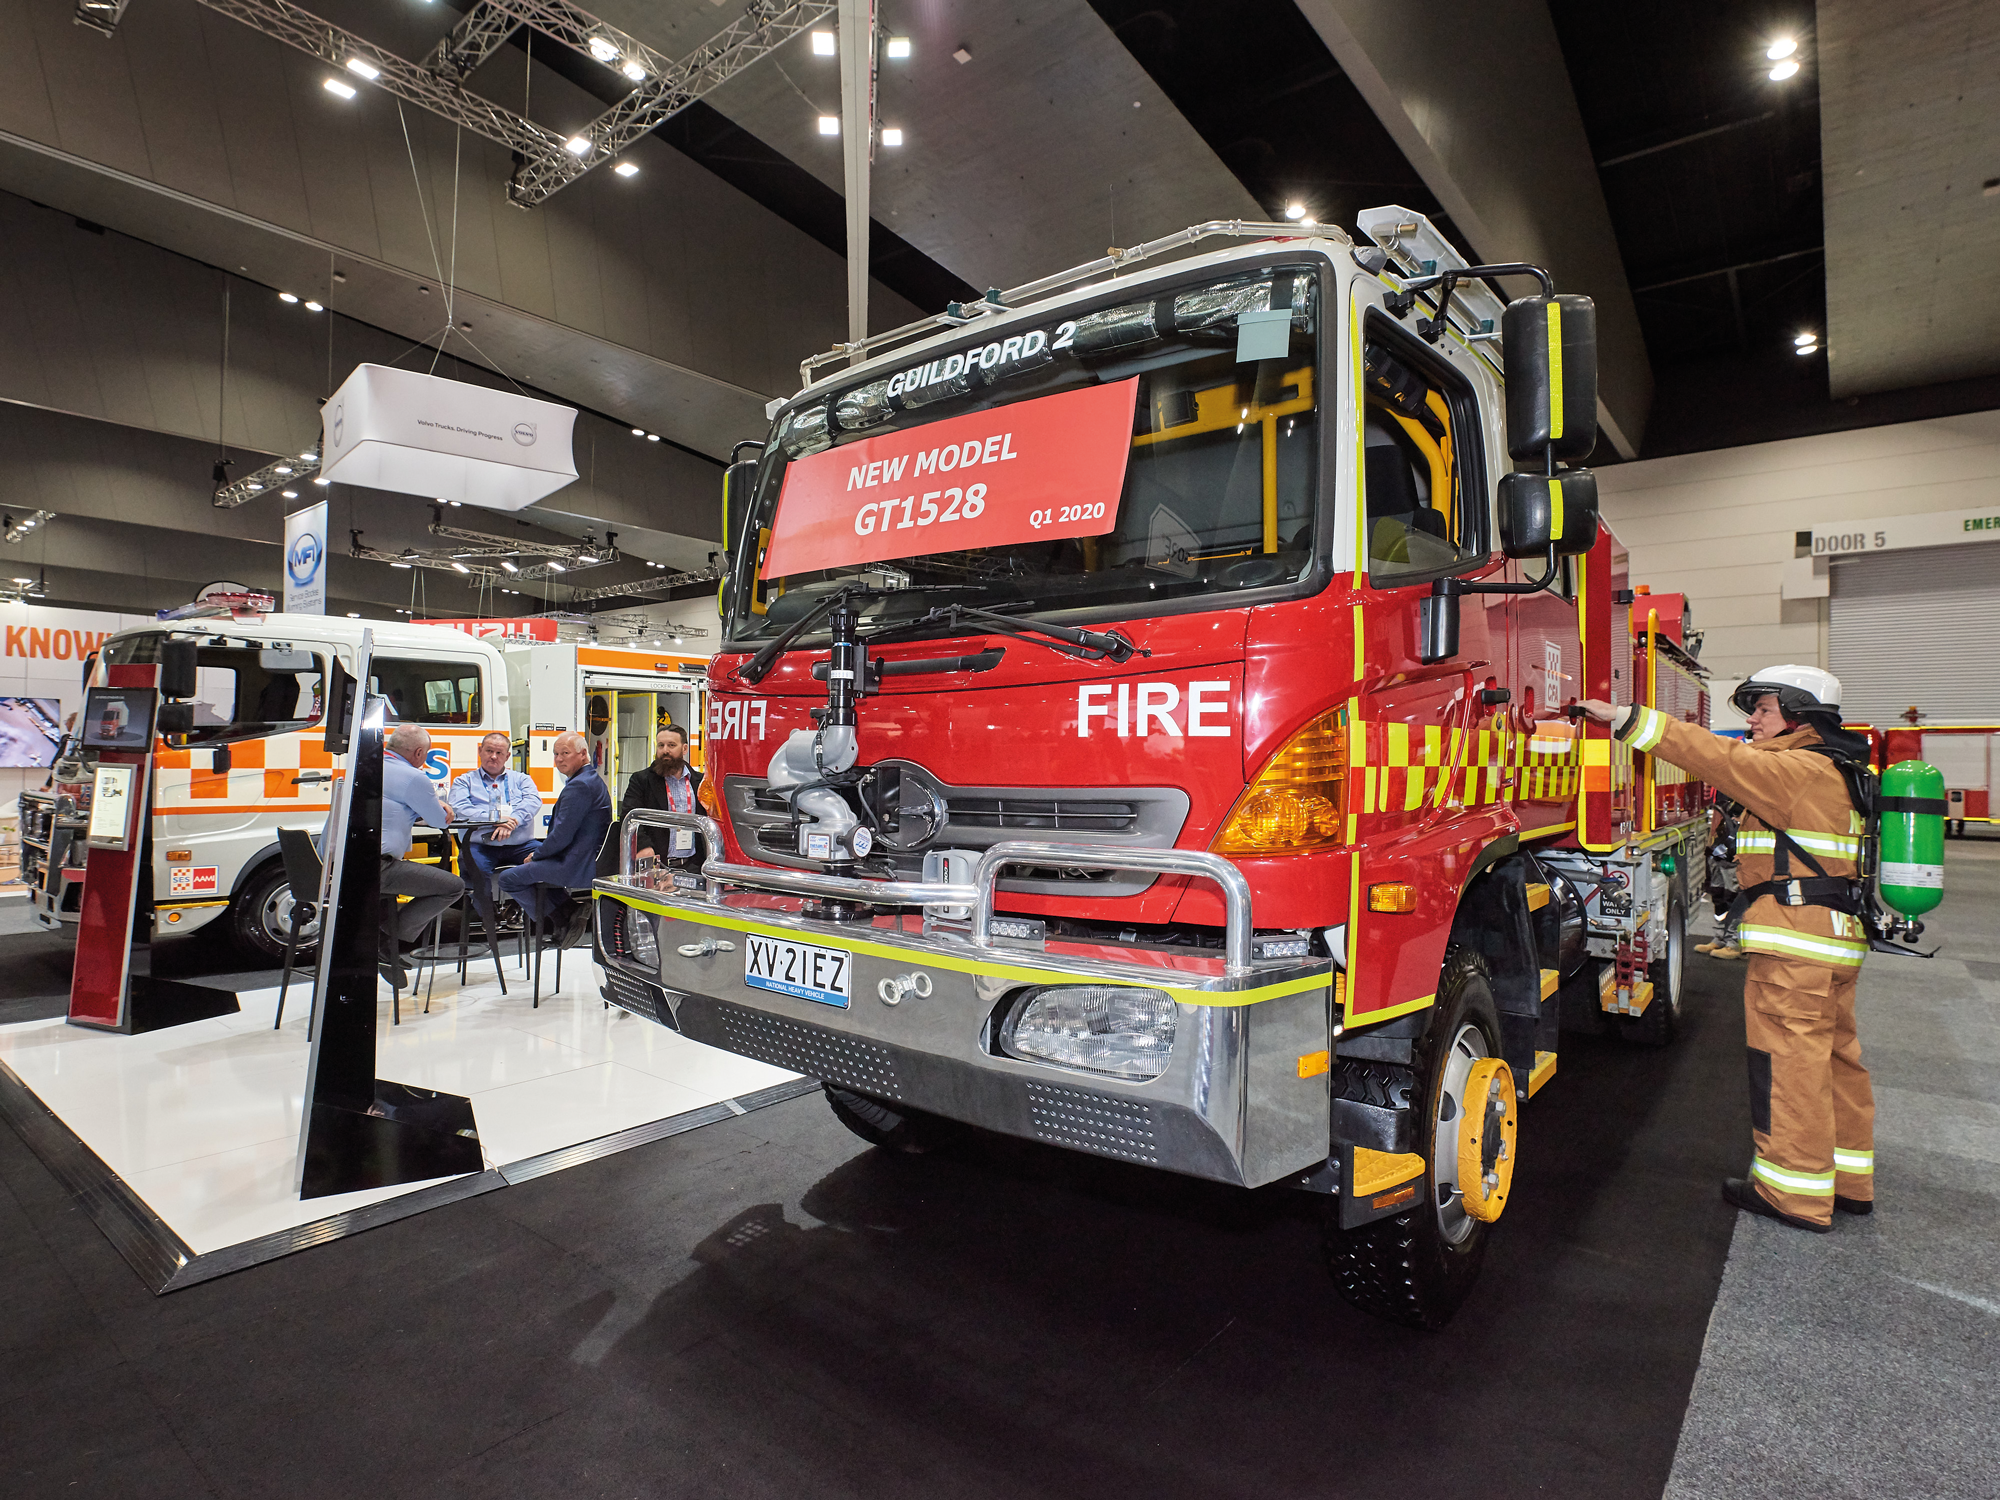 Hands-on opportunity to view the latest technology, safety and efficiency features in today's fire appliances, major OEMs and service body builders are showcasing.